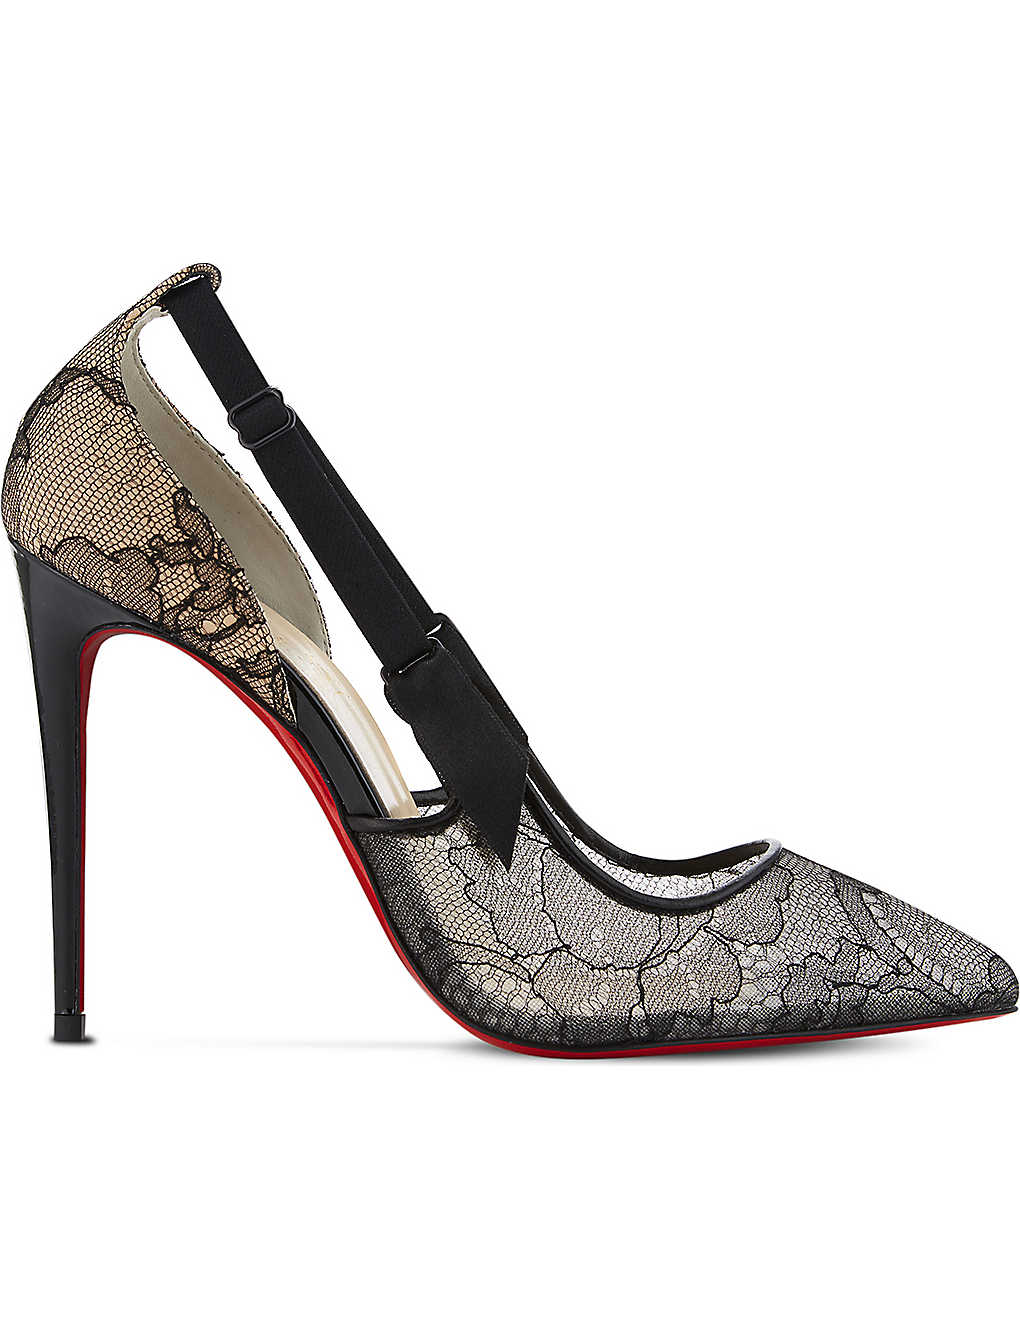 lowest price 3127d b0389 CHRISTIAN LOUBOUTIN - Hot Jeanbi 100 chantilly/patent ...